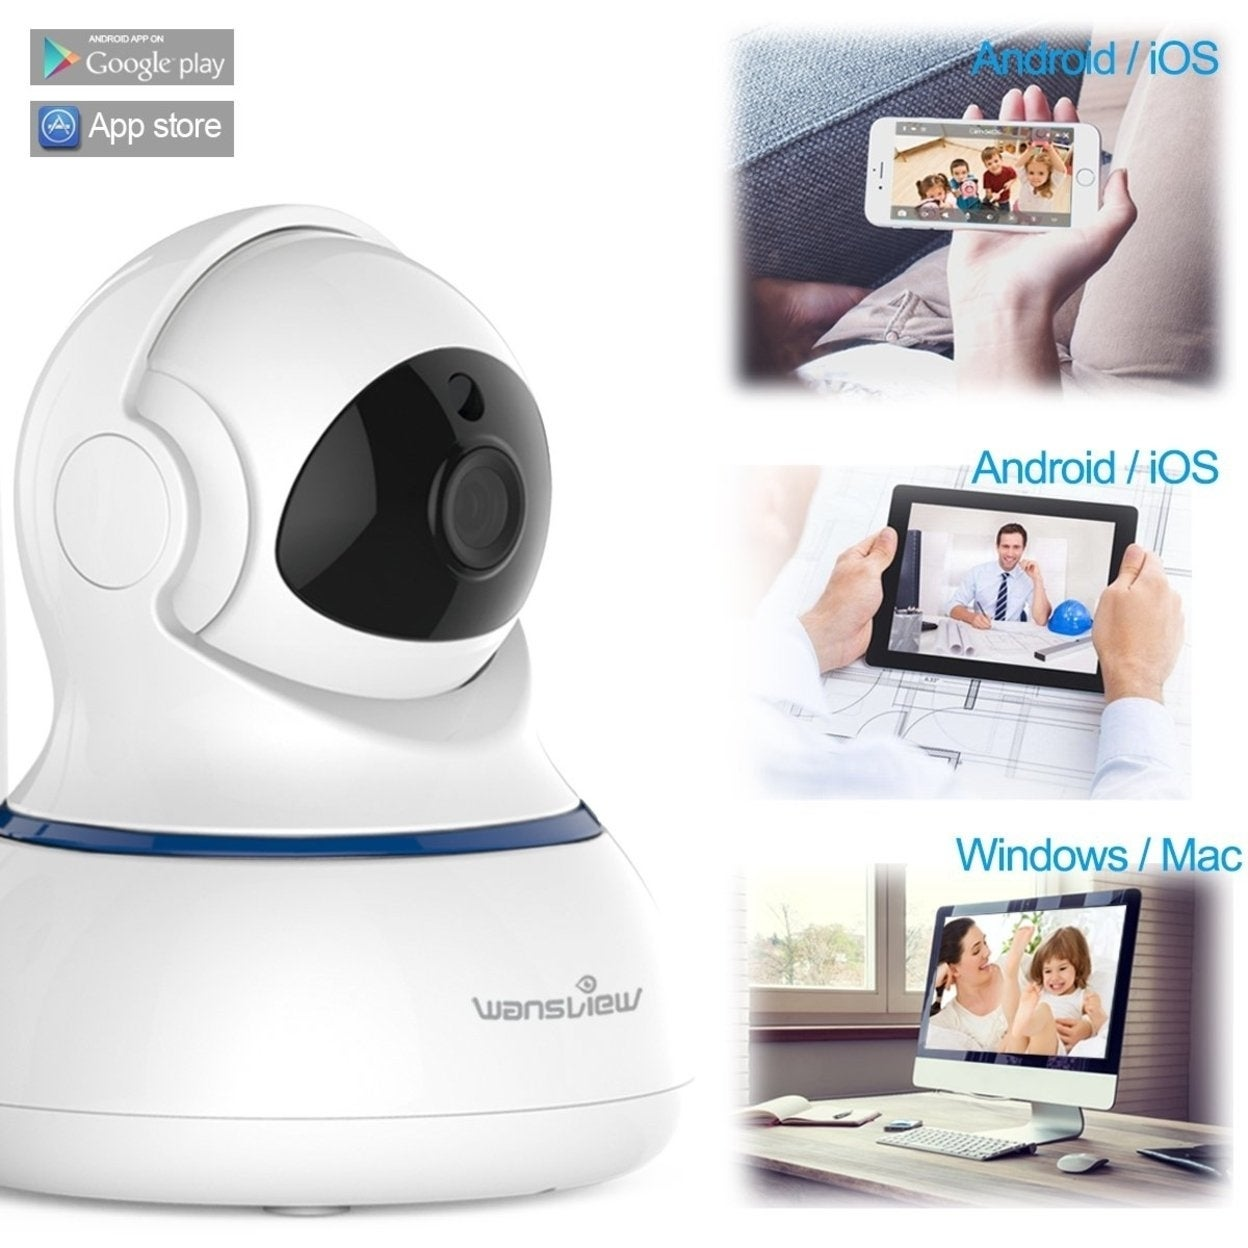 Wansview Wireless 1080P Security Camera, WiFi Home Surveillance IP Camera  Pan/Tilt, Two-Way Audio & Night Vision Q3-S